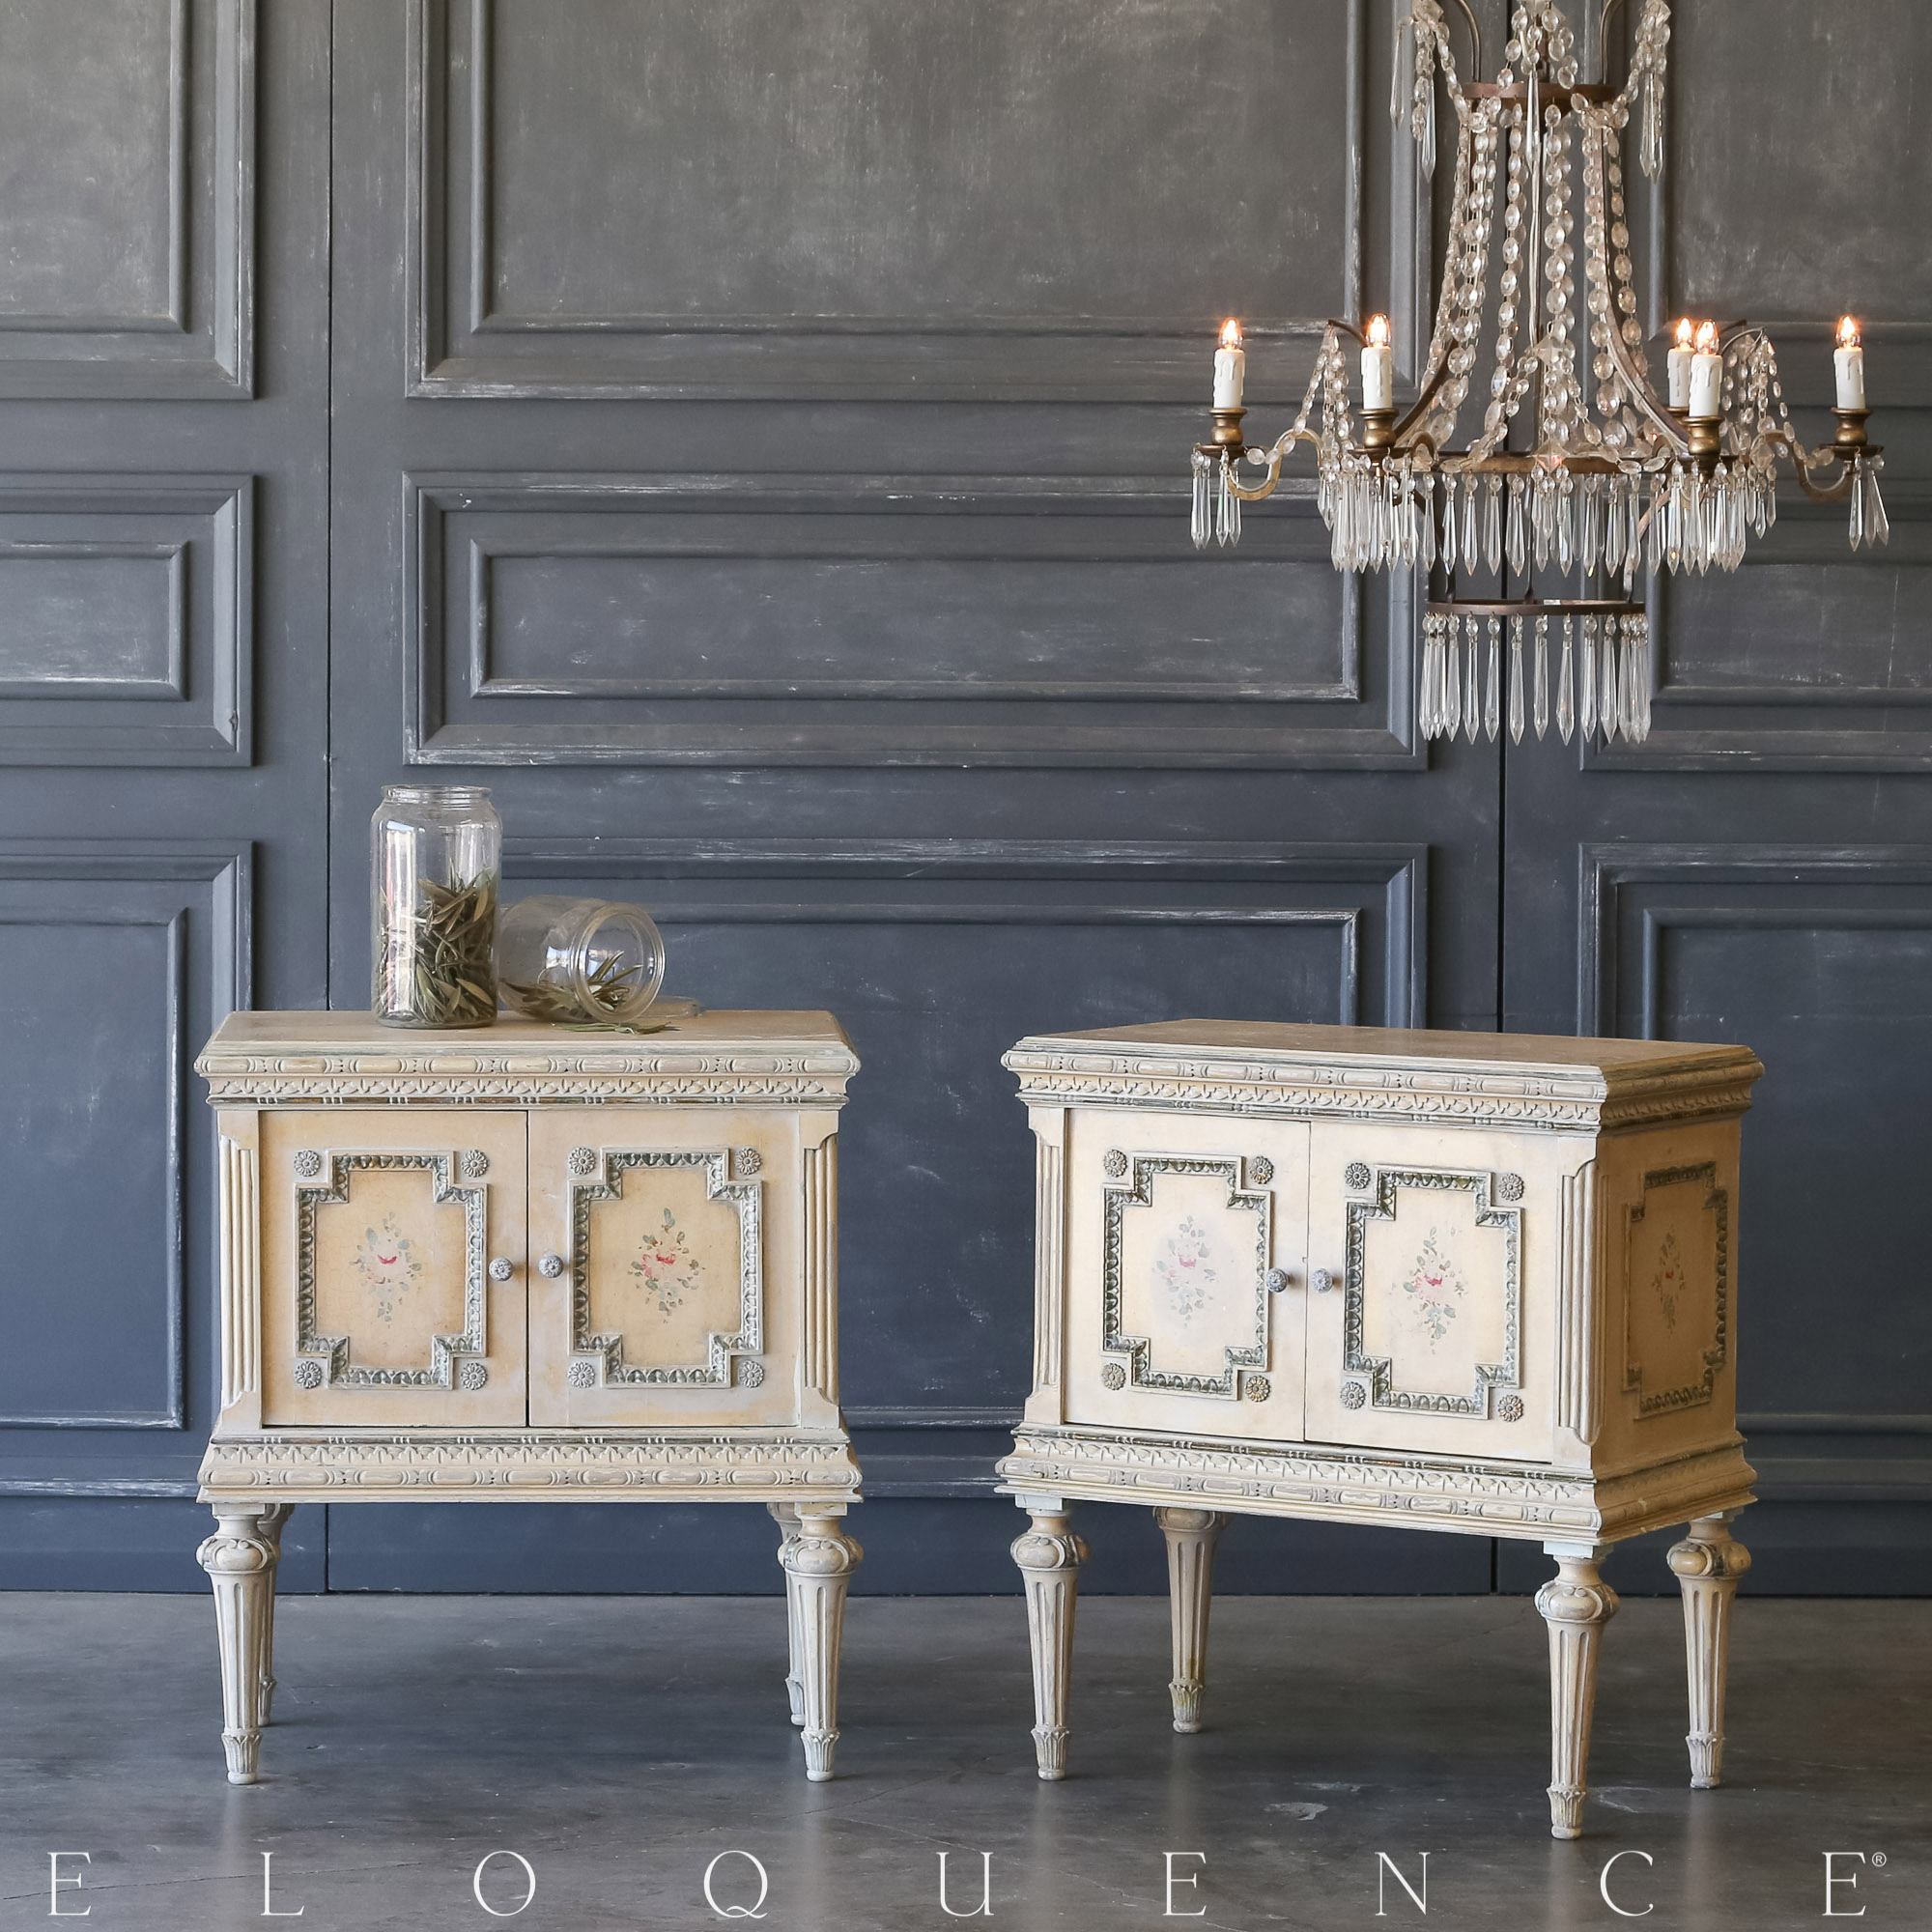 Eloquence® Pair of Vintage Floral Nightstands: 1940